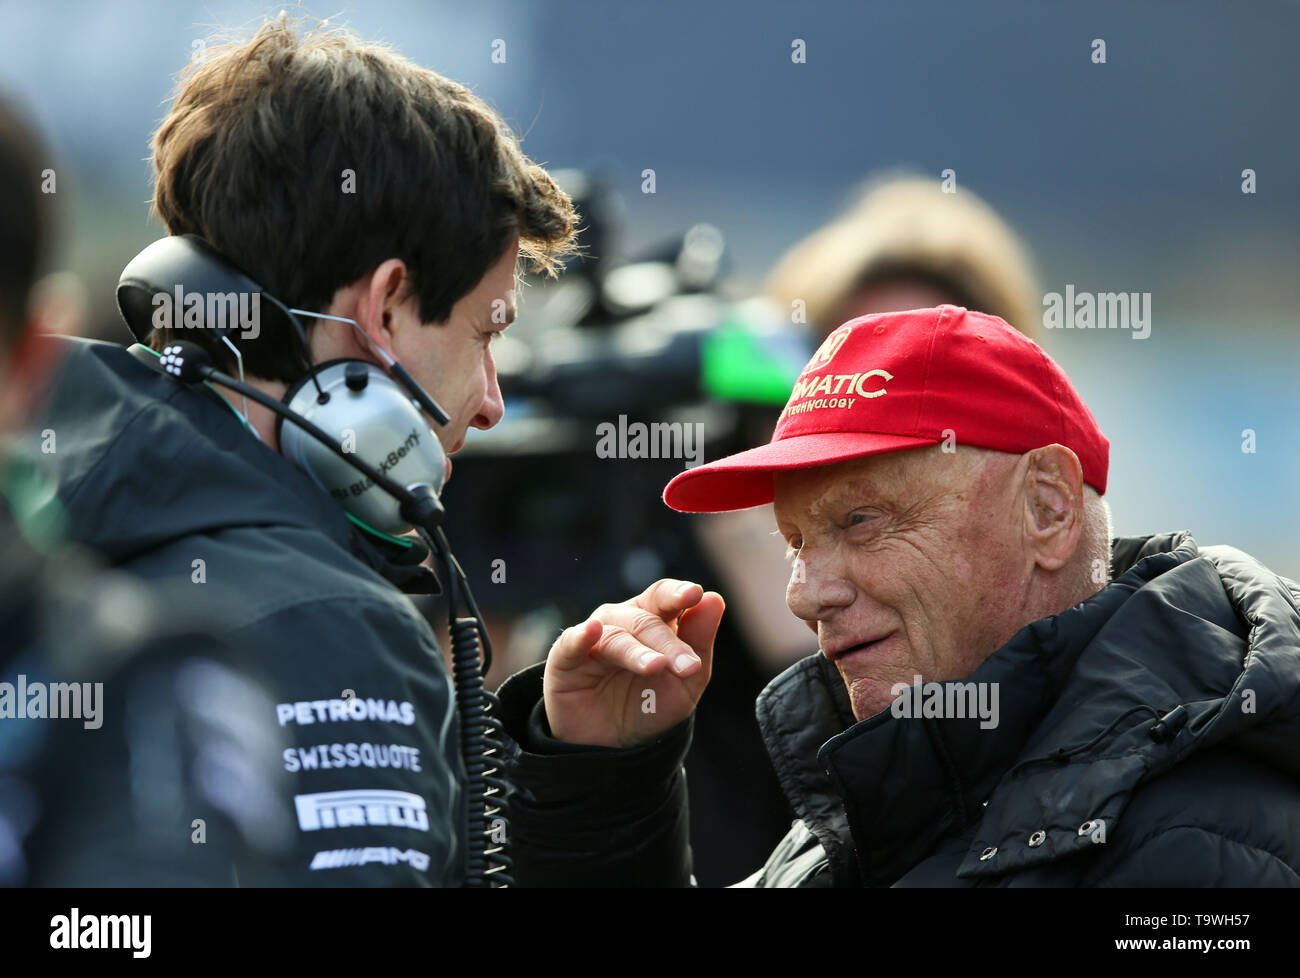 Jerez De La Frontera, Spain. 28th Jan, 2014. Motorsport Formula 1 test drives on the race track Jerez. The chairman of the supervisory board of the Formula 1 team of Mercedes Niki Lauda (r) talks to Mercedes motorsport boss Toto Wolff (l). Three-time Formula One world champion Niki Lauda is dead. The Austrian died on Monday at the age of 70. Credit: Jens Buettner/dpa/Alamy Live News - Stock Image